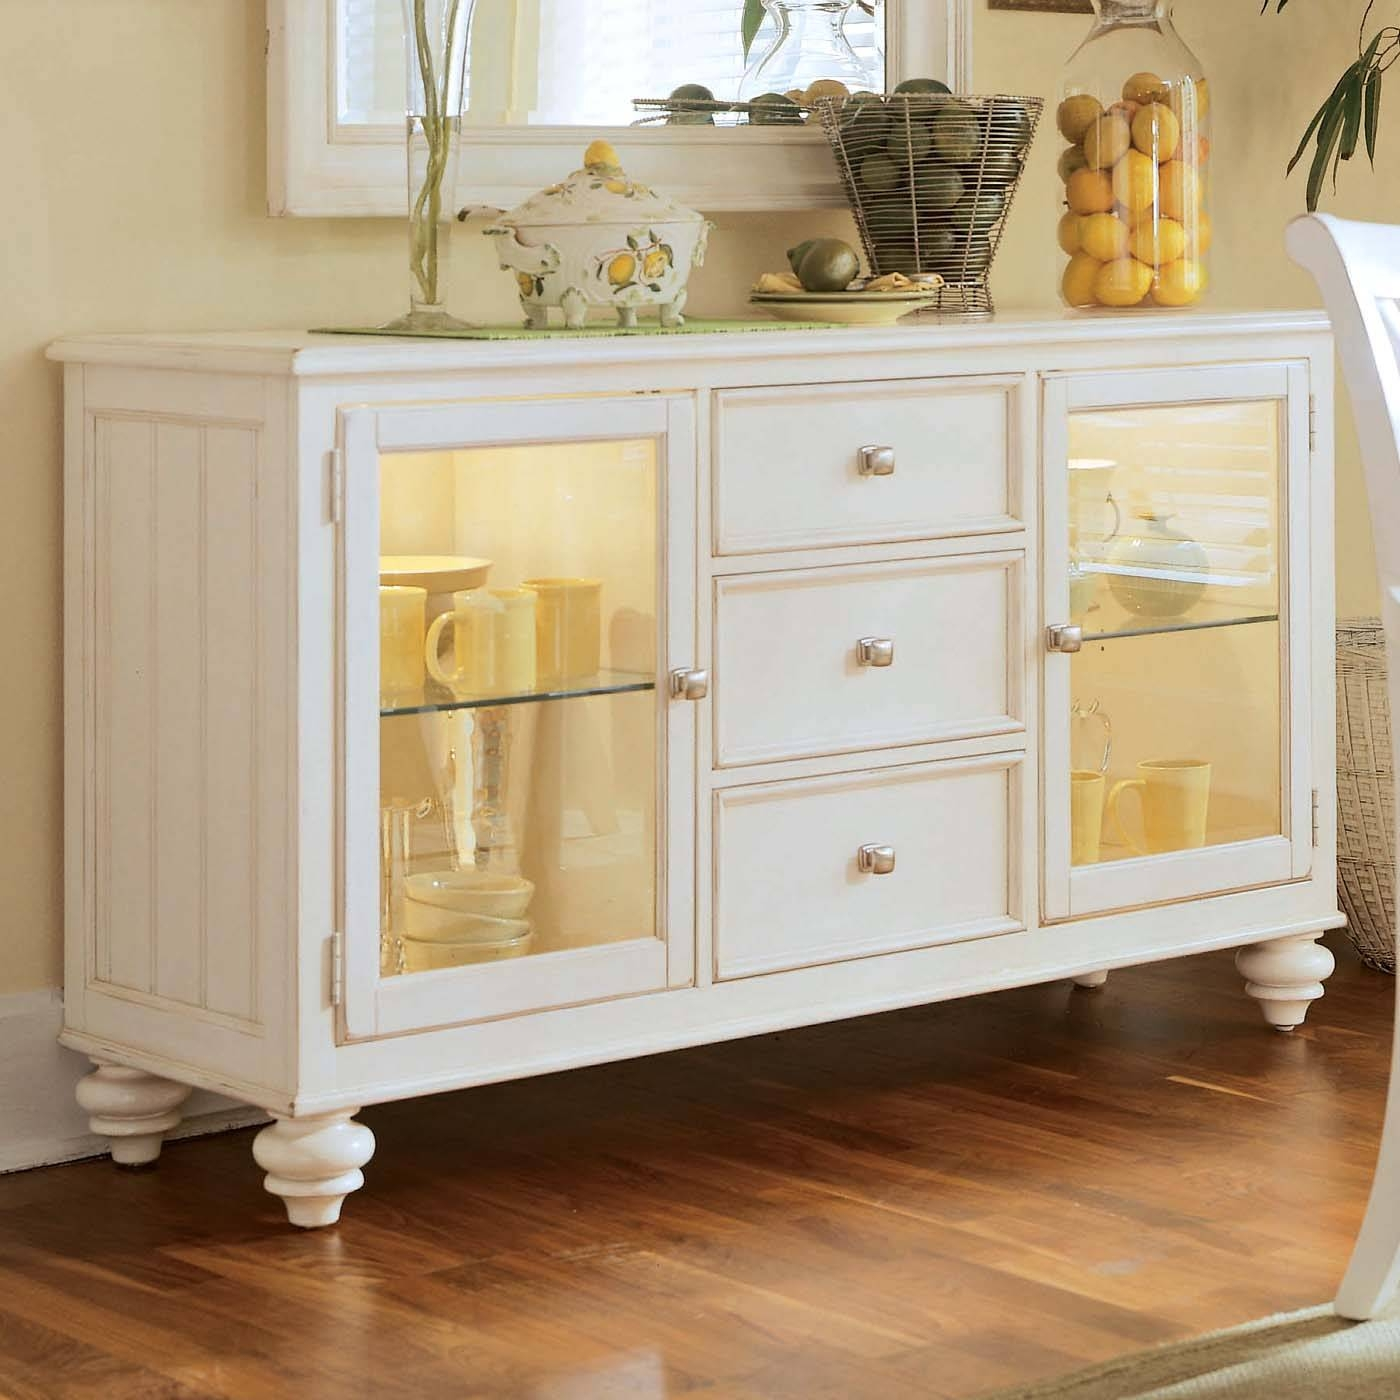 Cozy Rustic Kitchen Buffet Furniture   Furniture Ideas And Decors Within Kitchen Sideboards Buffets (View 11 of 15)